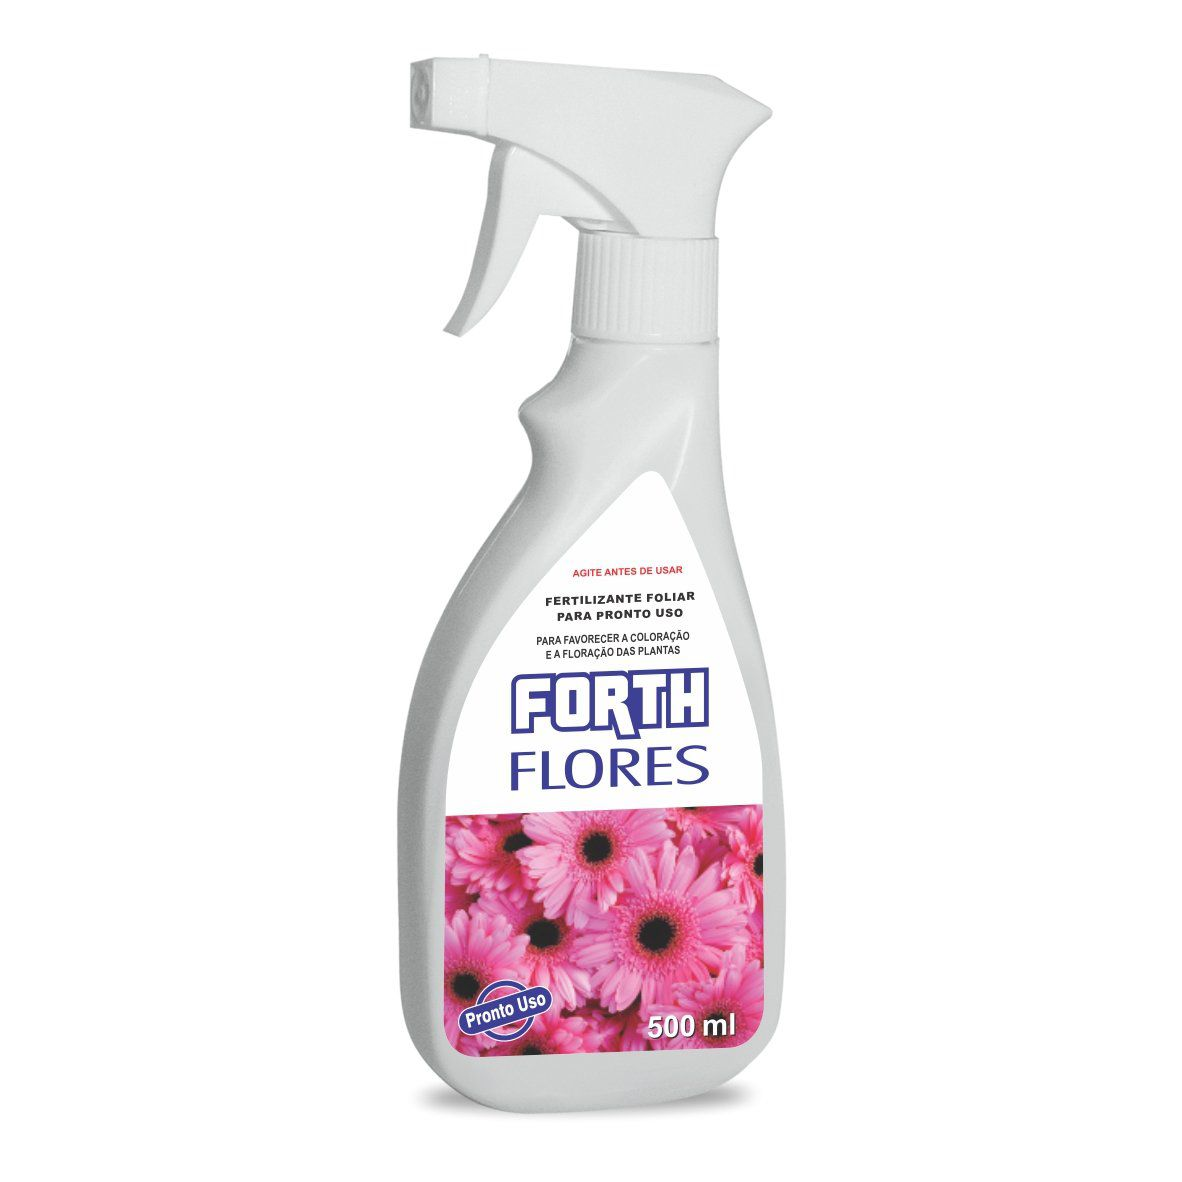 Fertilizante Foliar Forth Flores 500ml pronto para uso